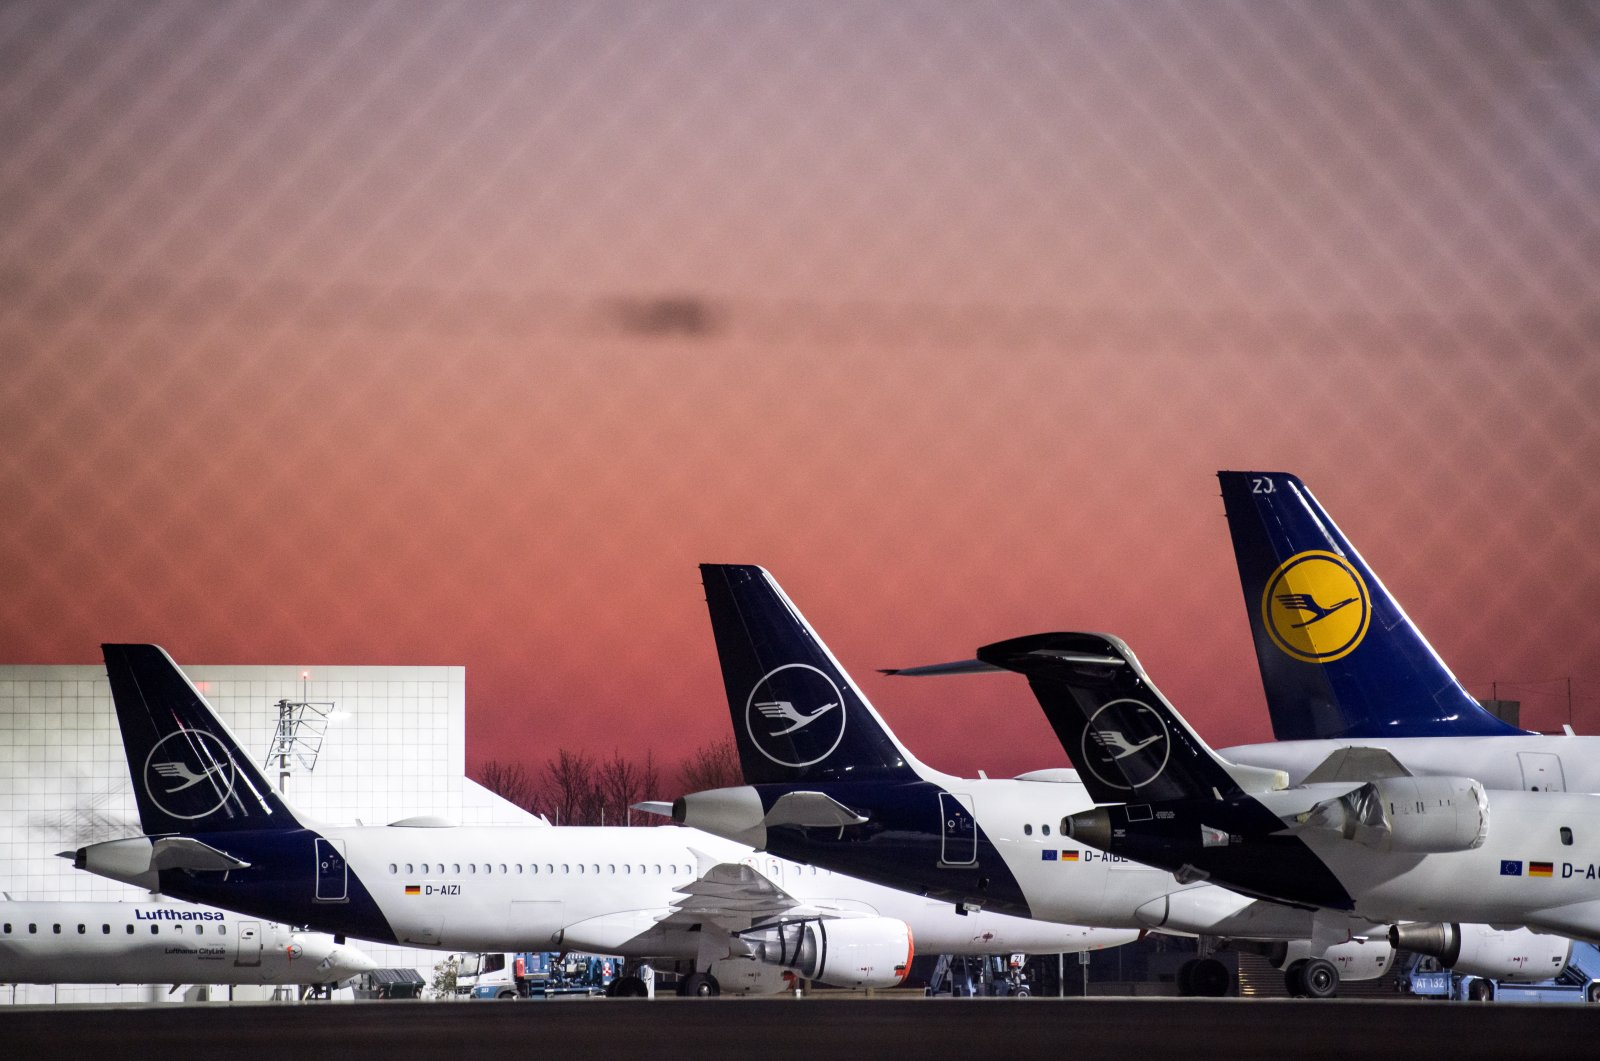 This picture released on March 26, 2020, shows Lufthansa aircraft parked at the airport in Munich, Germany on March 25, 2020. (EPA Photo)